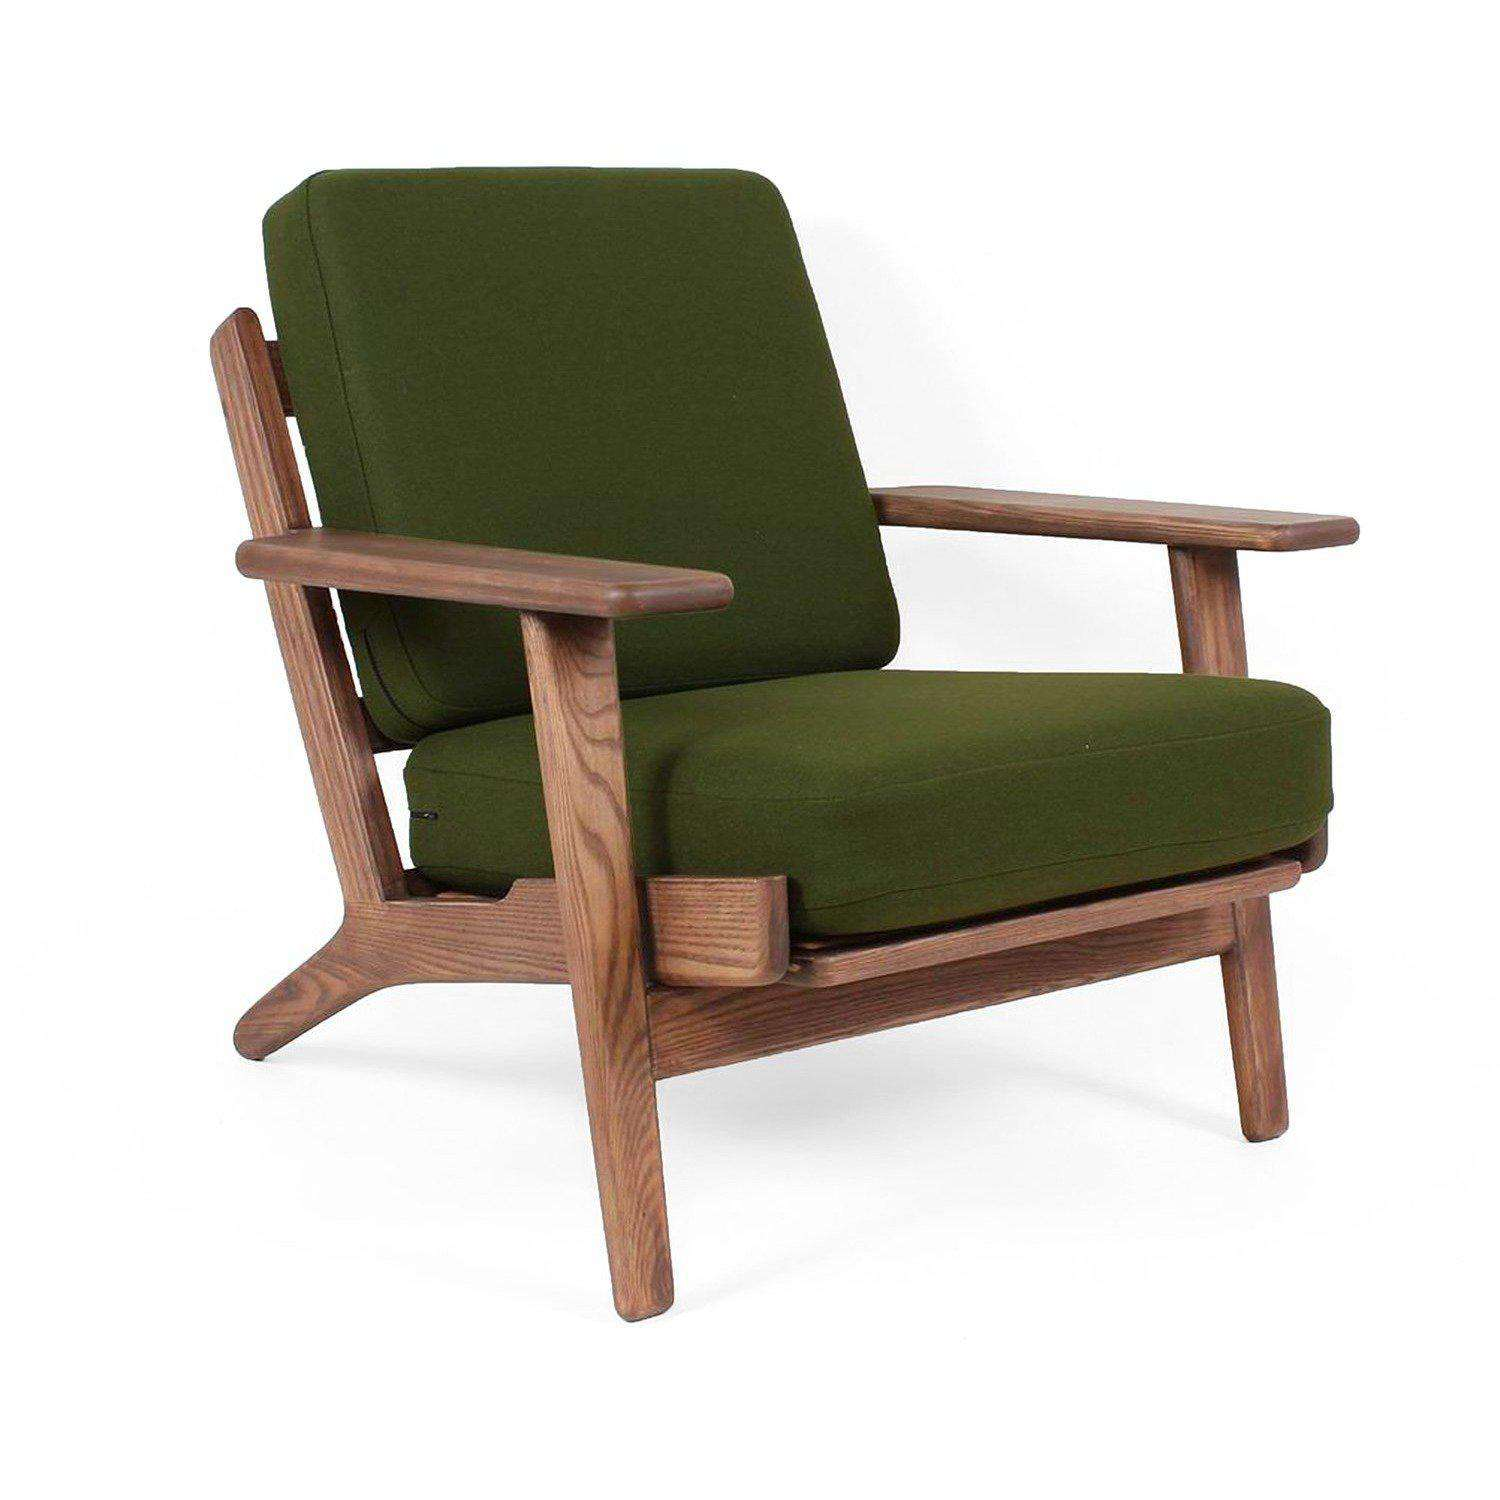 Hans Wegner Sofa Replica Mid Century Modern Reproduction Ge 290 Plank Chair Green